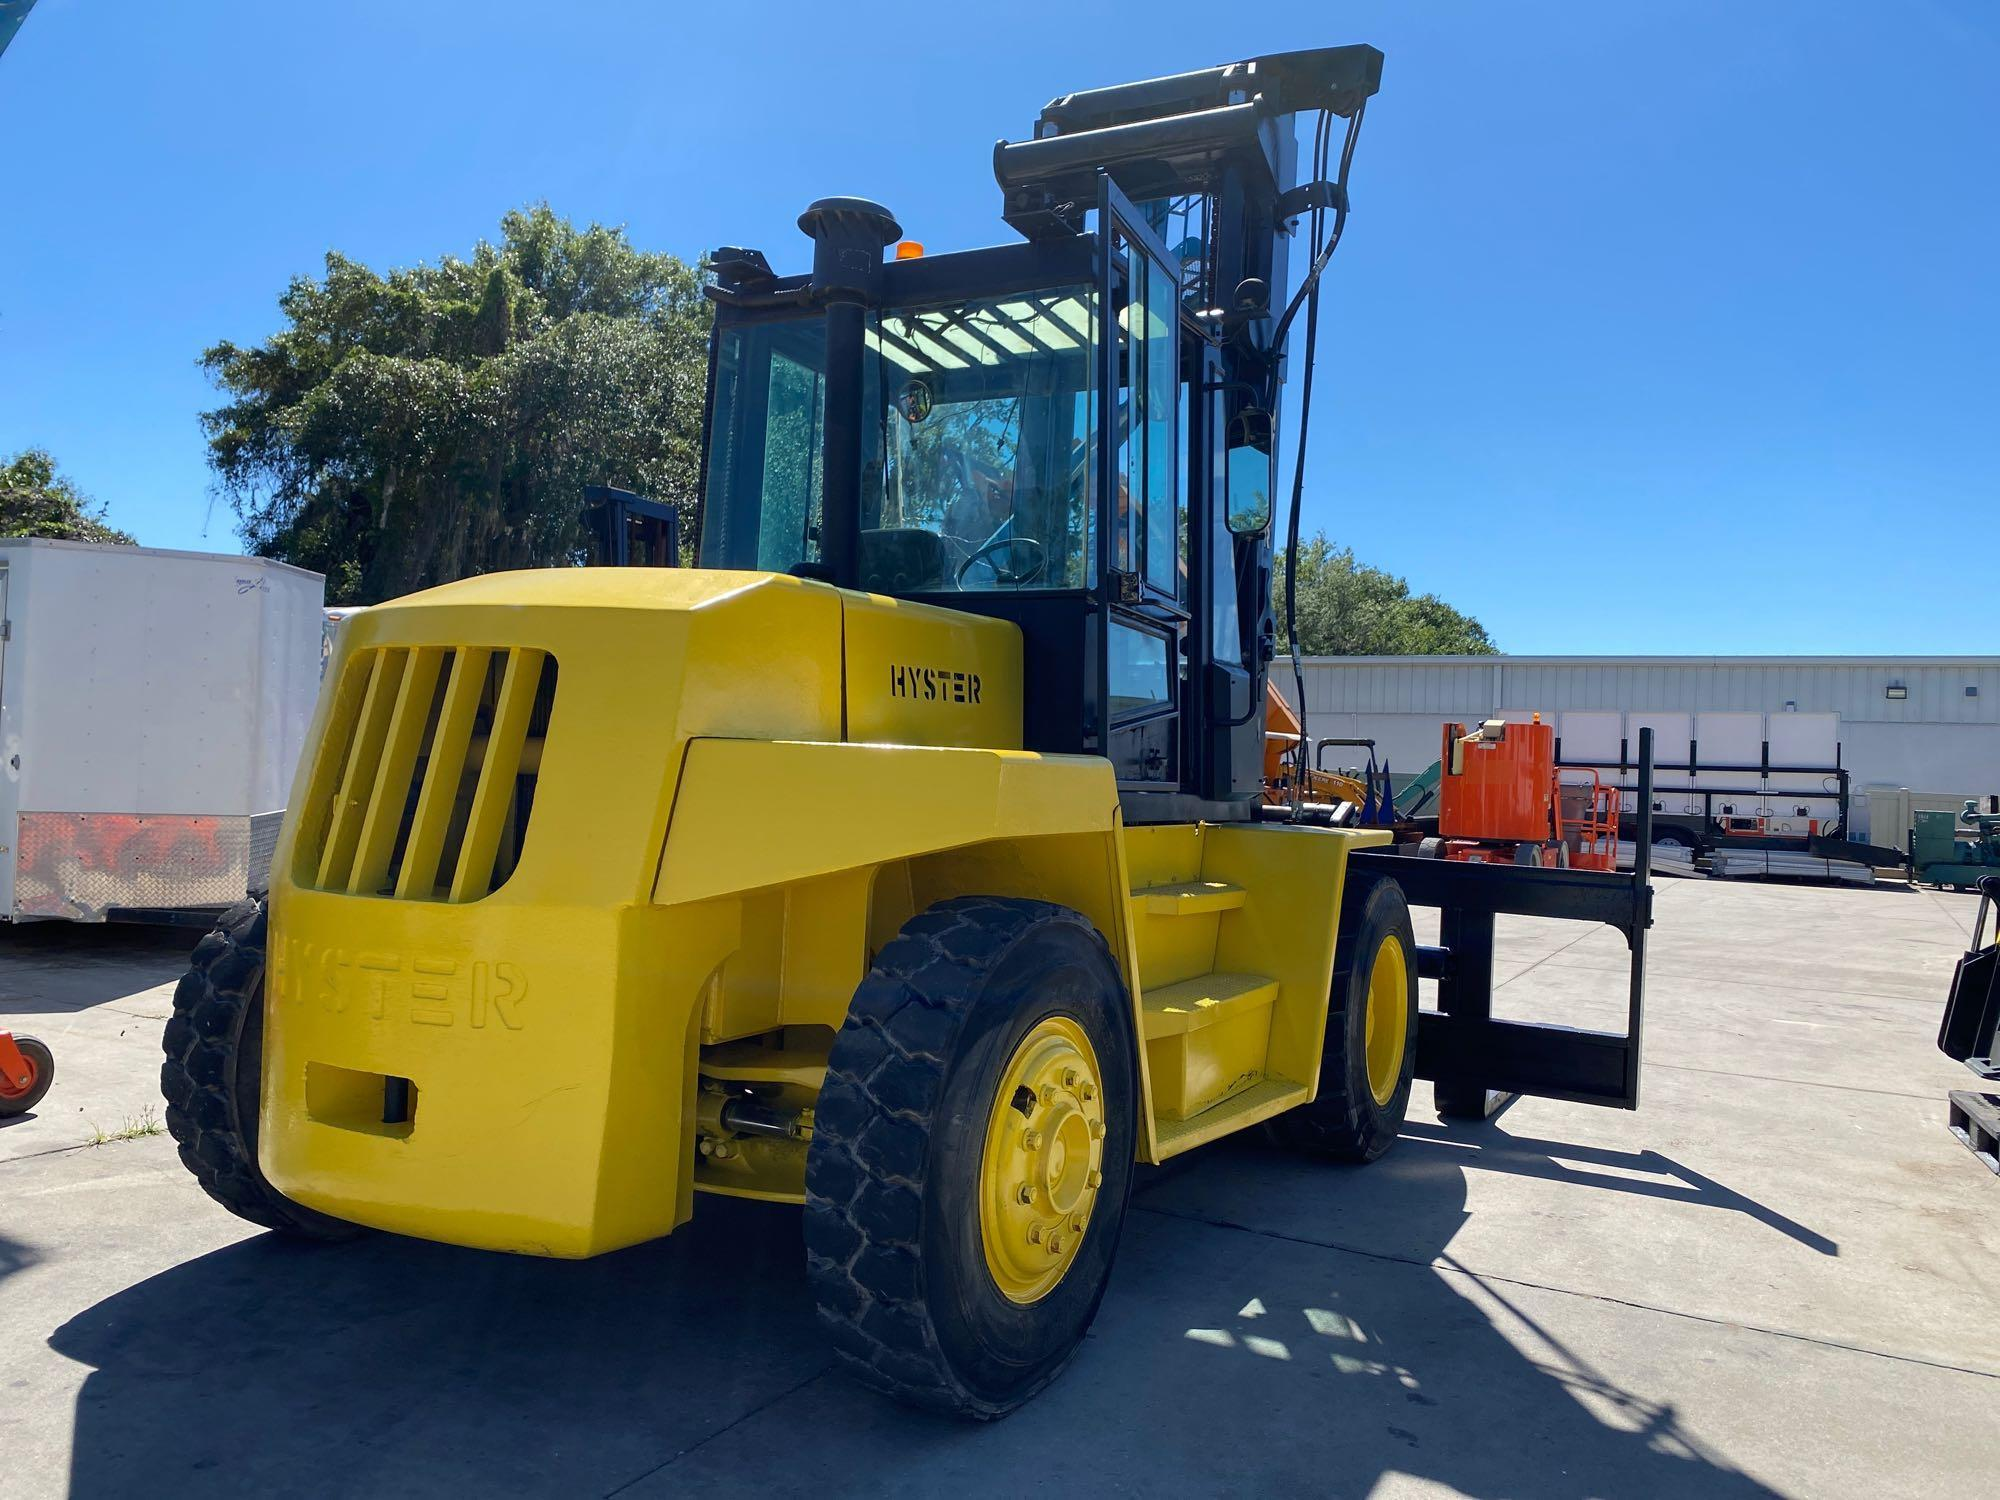 """HYSTER DIESEL FORKLIFT MODEL H190XL2, APPROX. 19,000 LB CAPACITY, 212.6"""" HEIGHT CAPACITY, RUNS AND O - Image 4 of 12"""